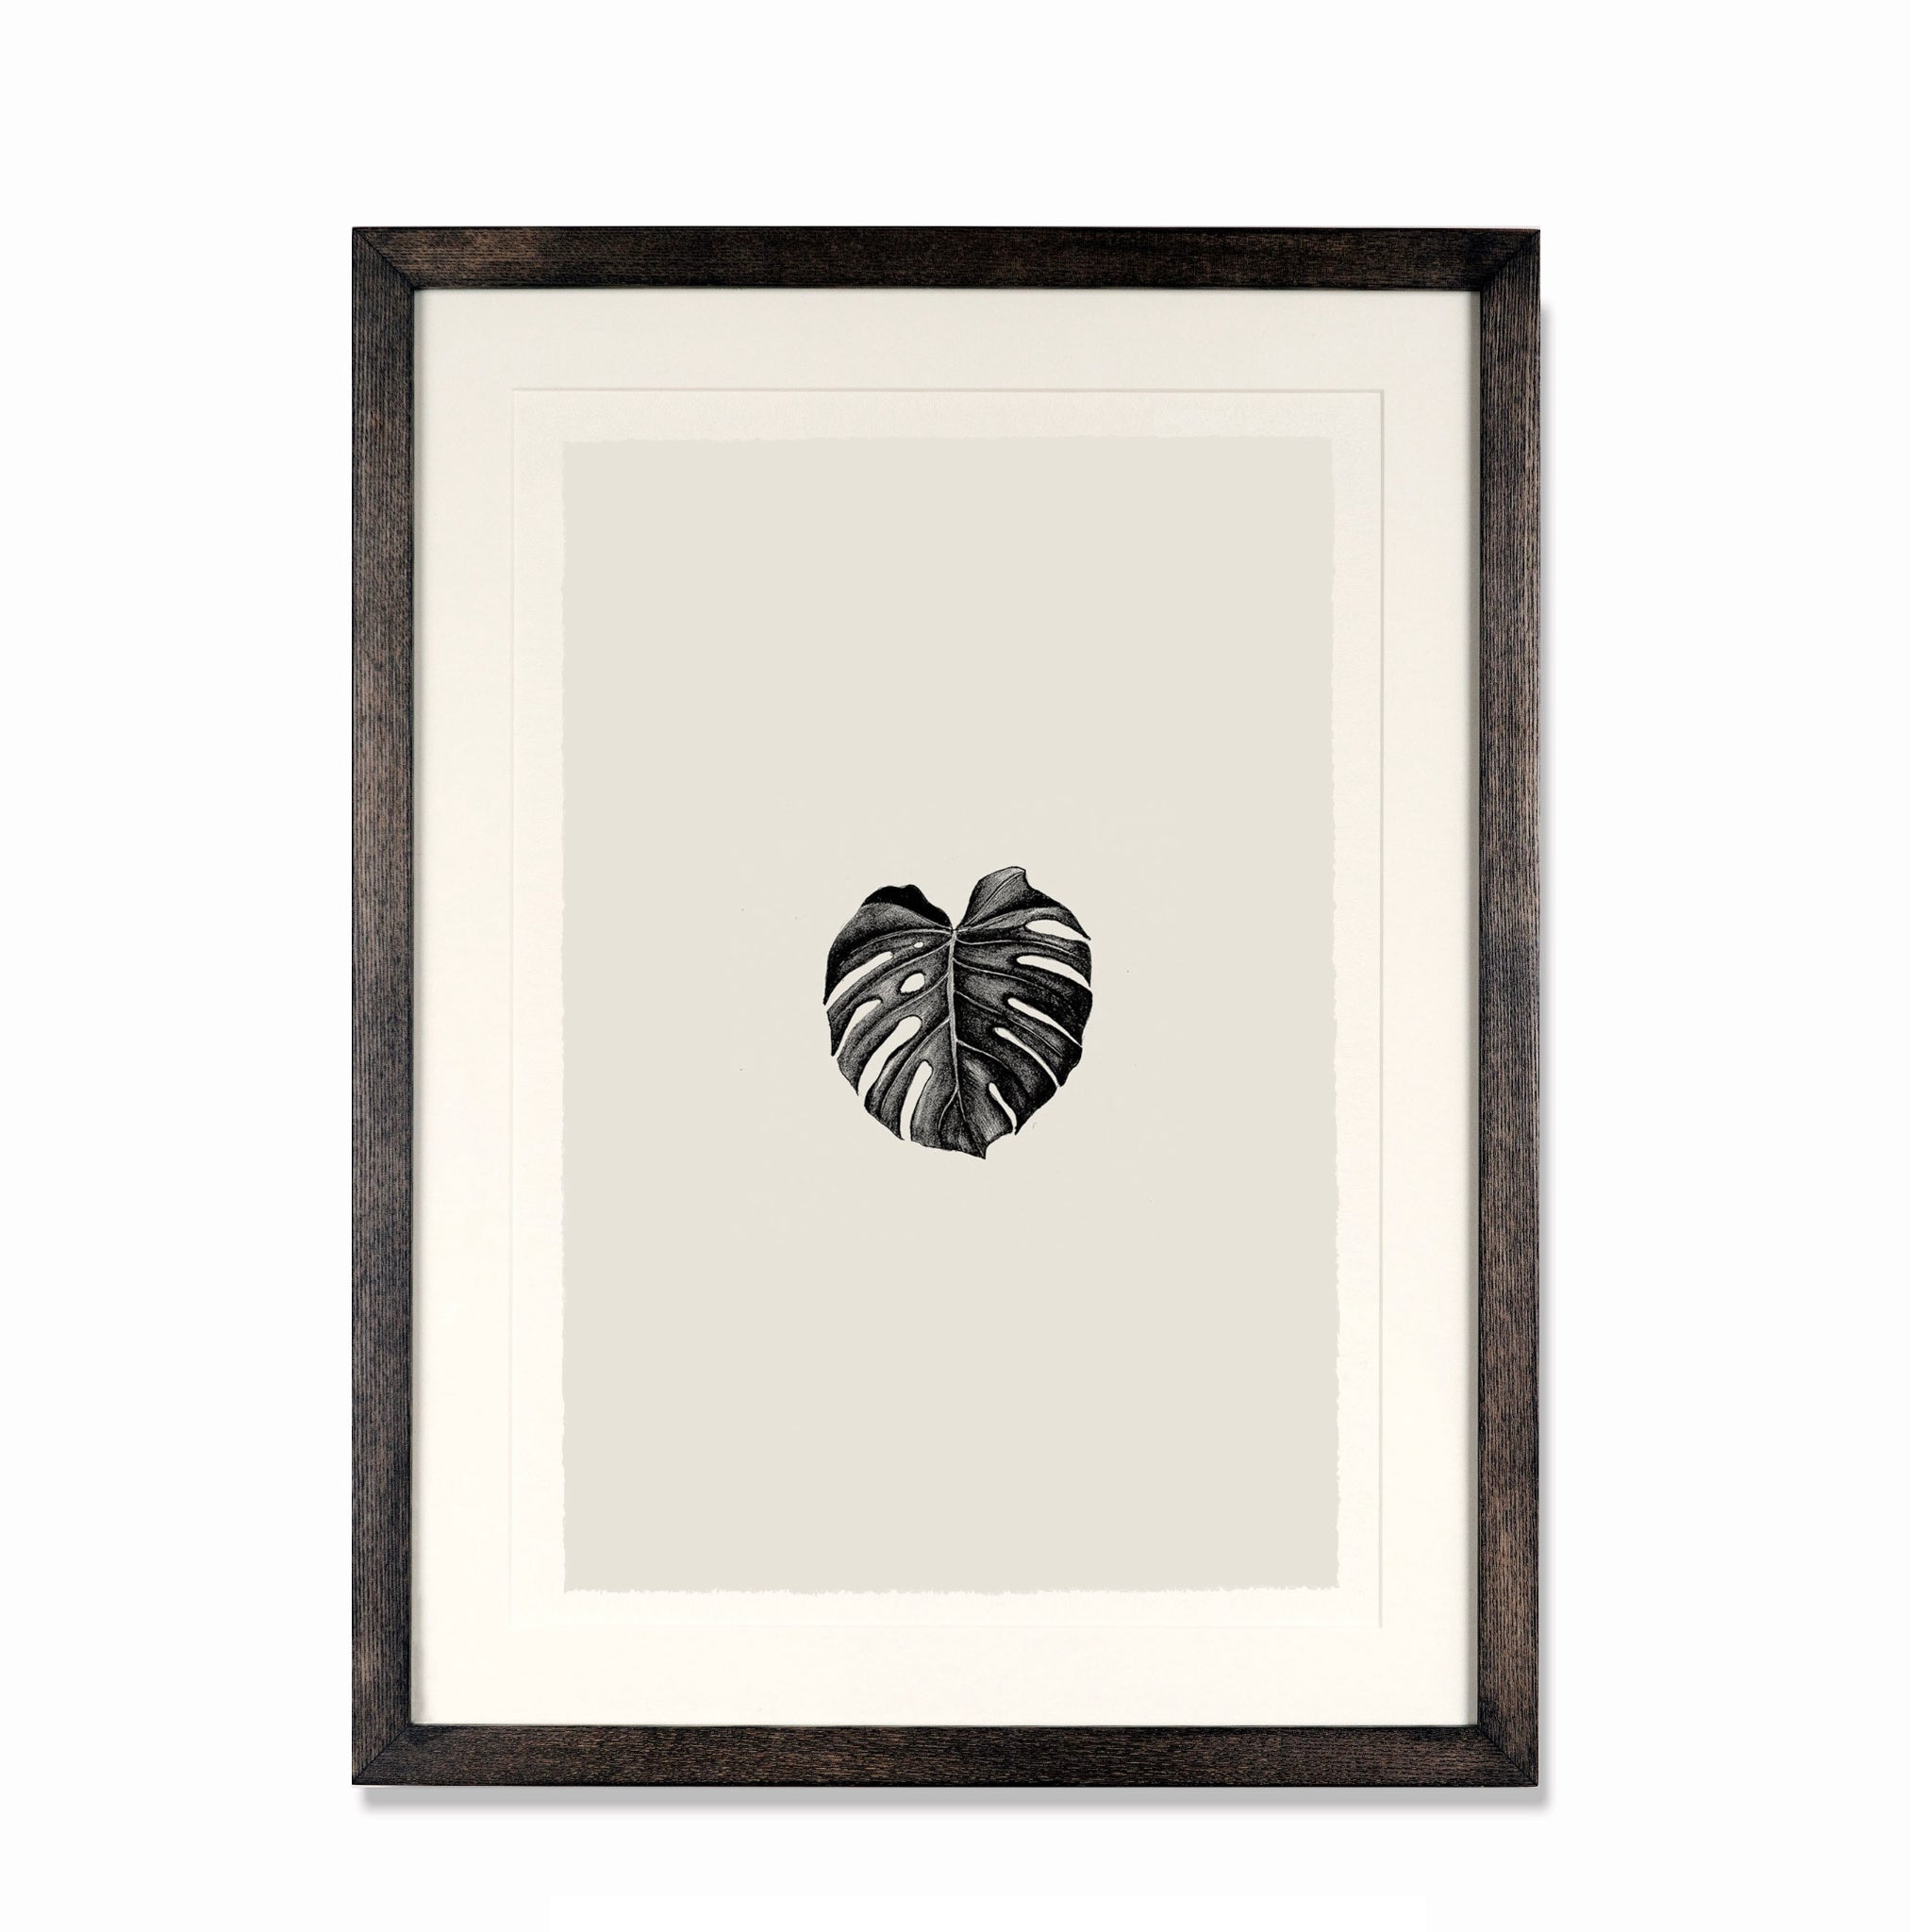 Illustration 001 (Monstera Deliciosa)